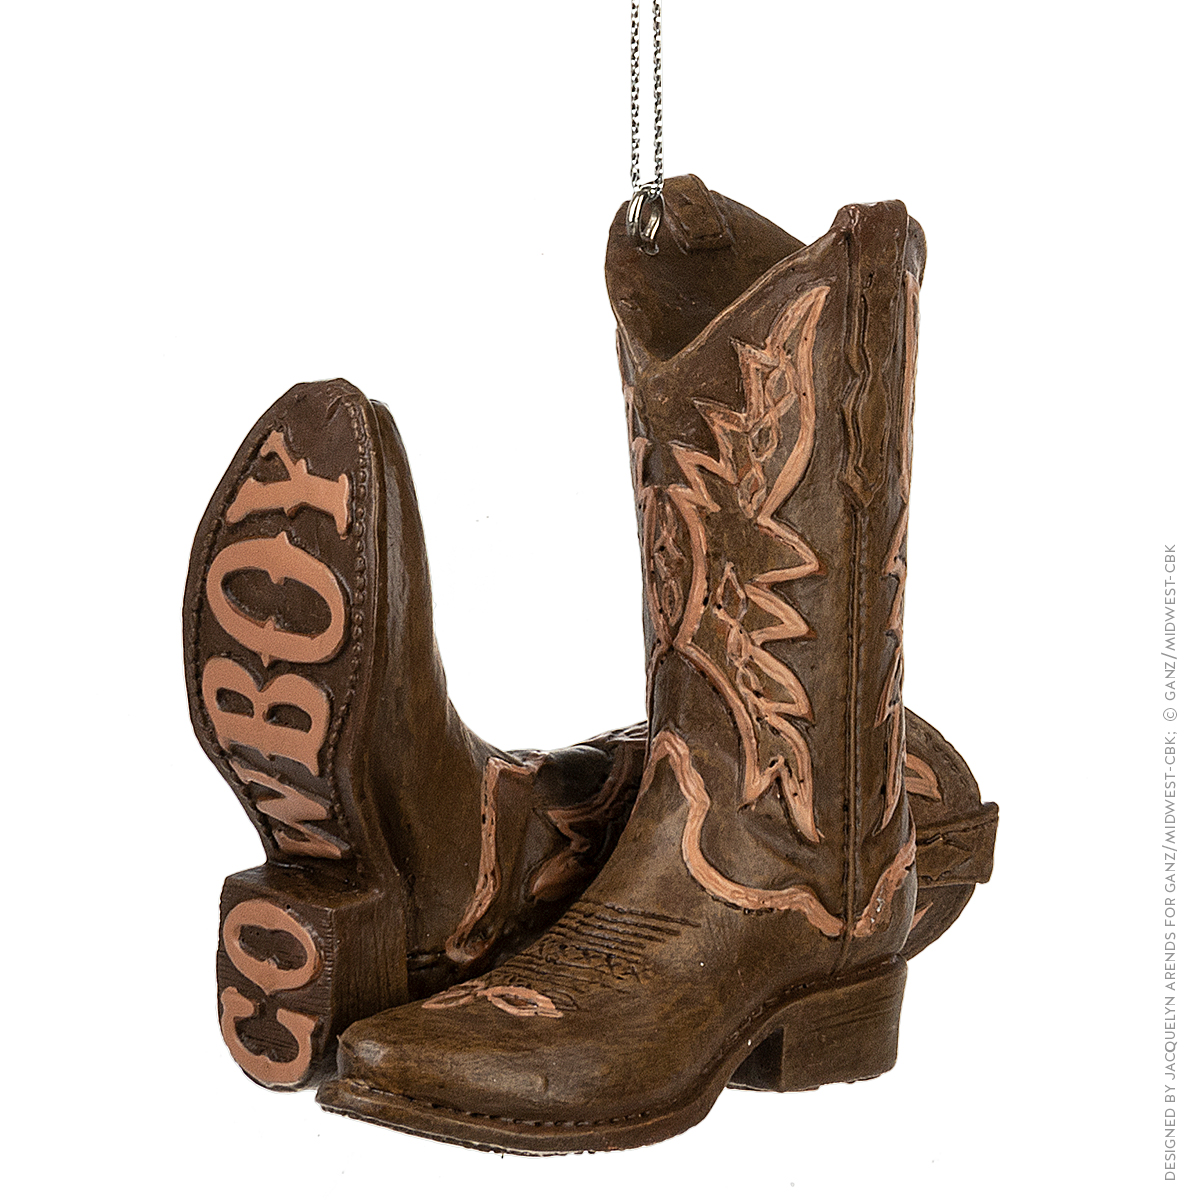 Specialty Ornaments Cowboy Boots ornament by Jacquelyn Arends; © Ganz/Midwest-CBK 2019